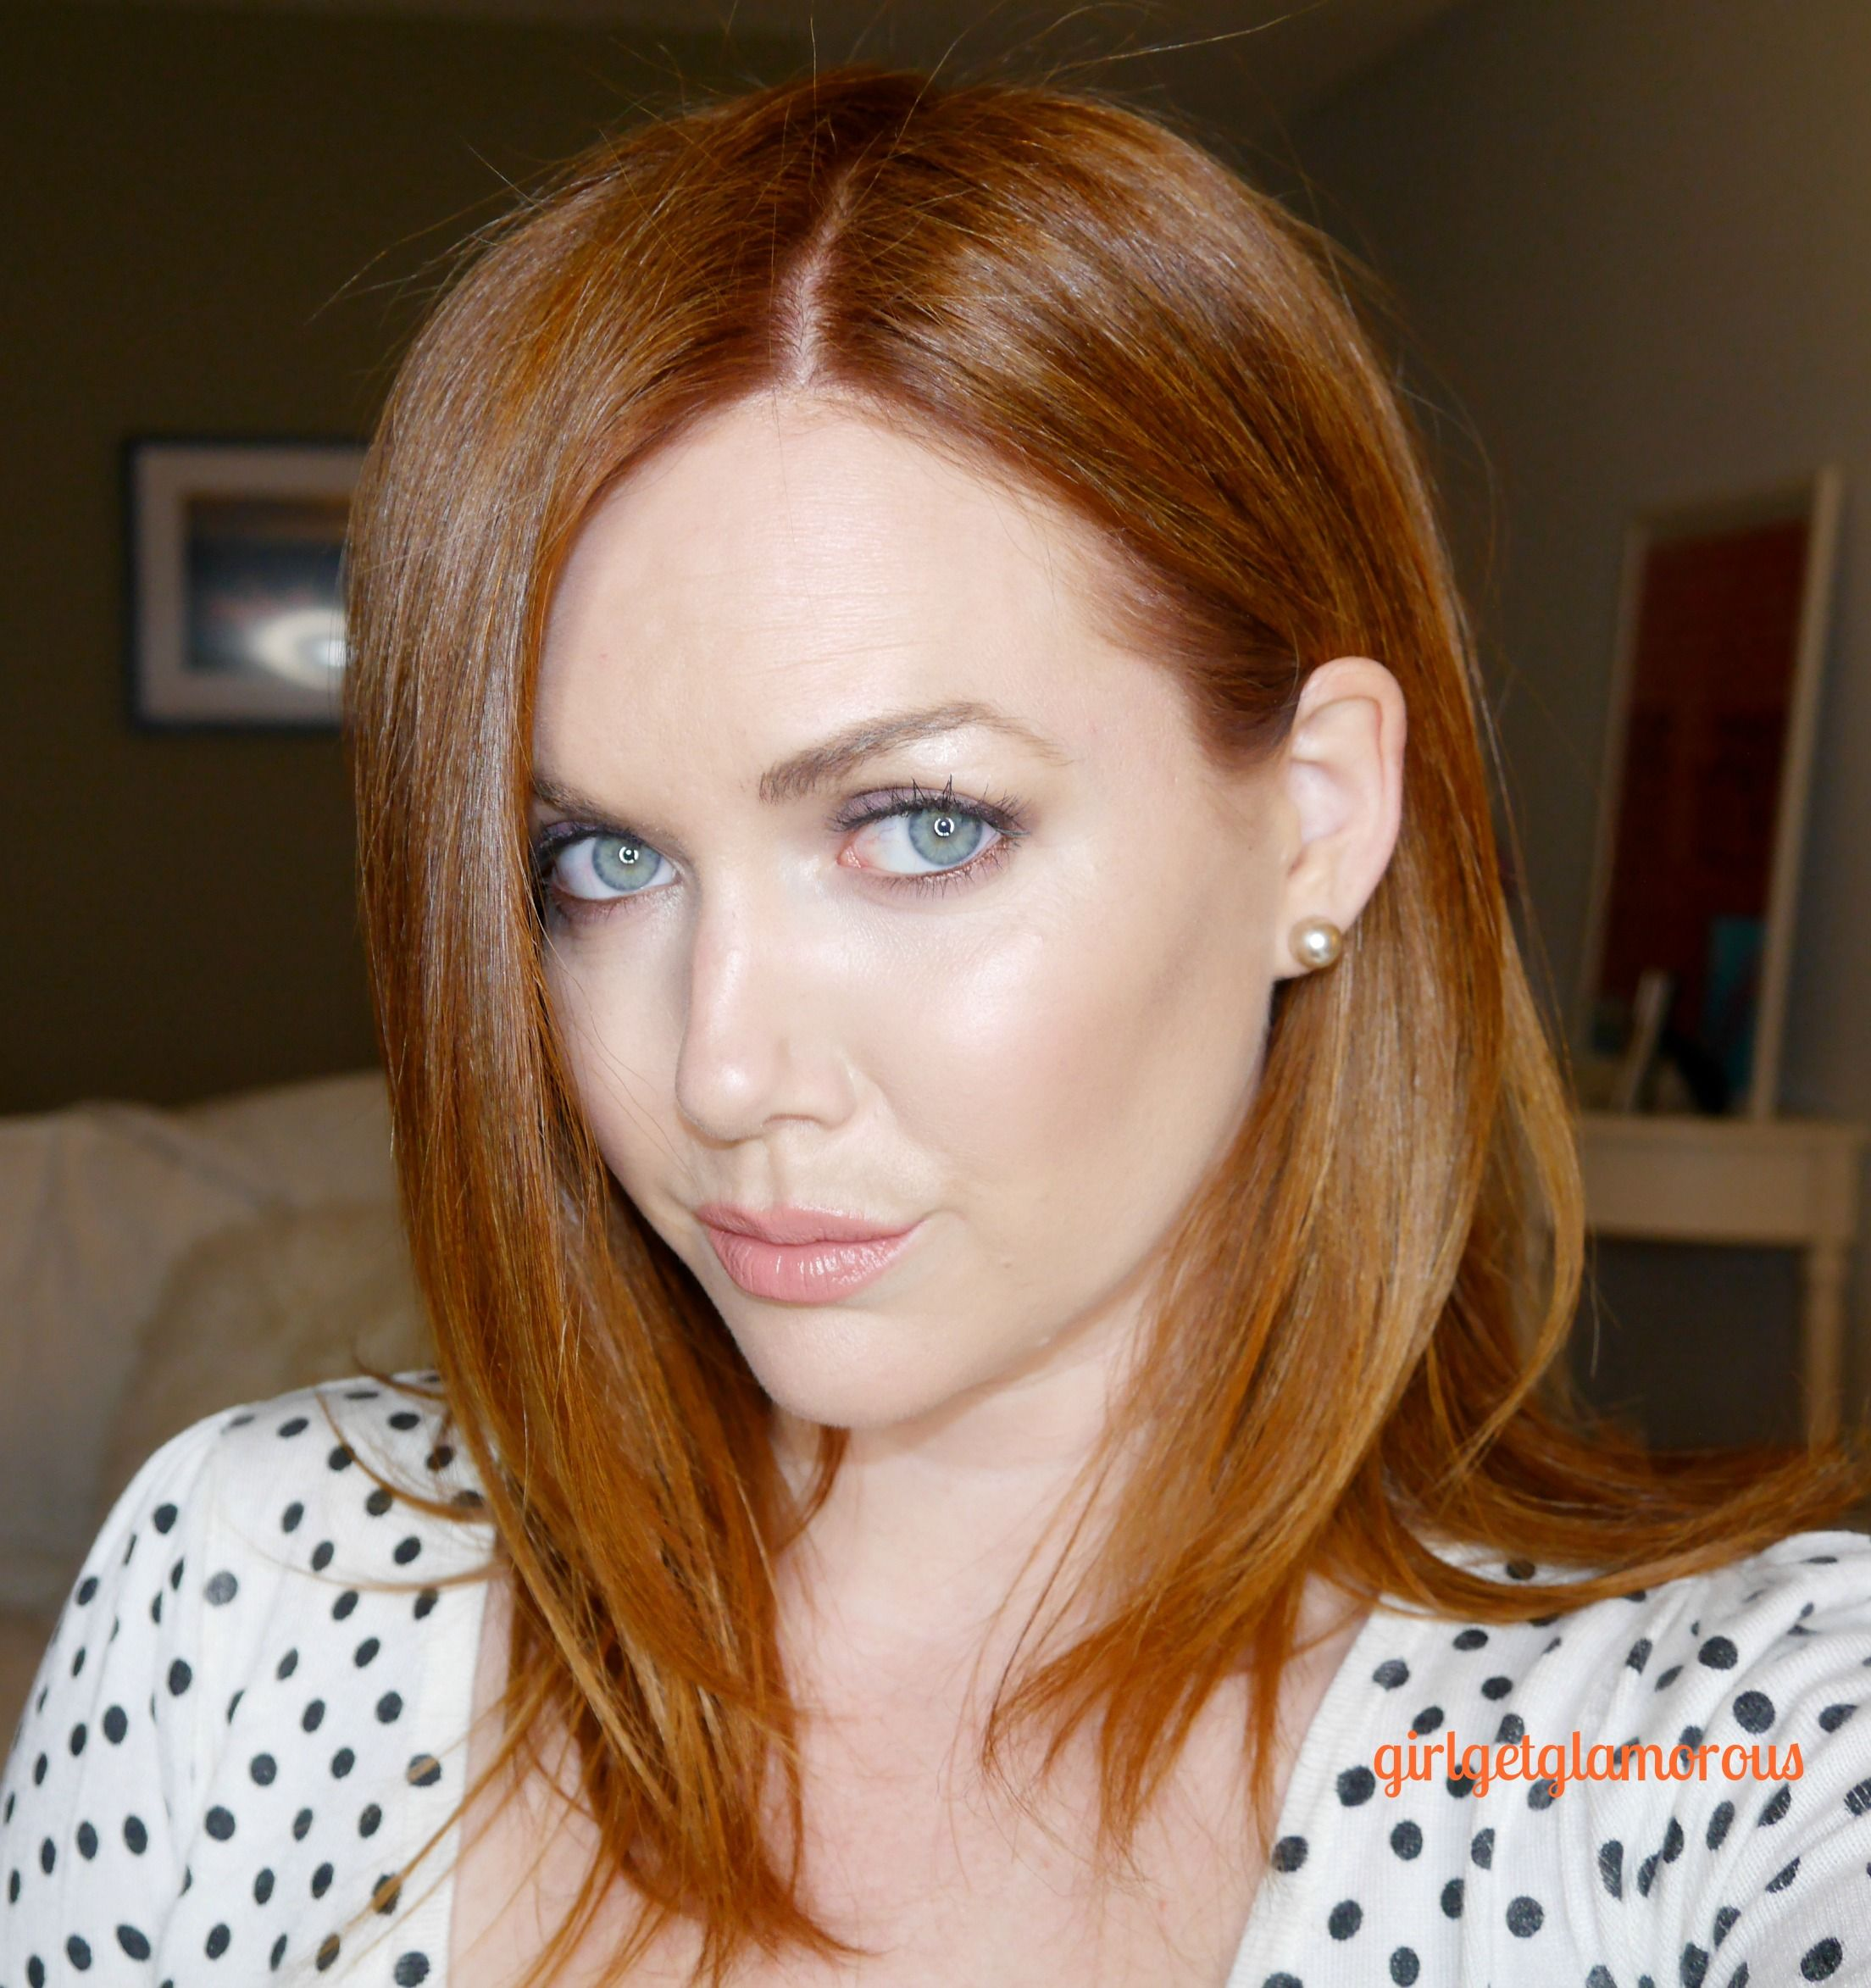 come along with me: haircut video + pics | strawberry blonde, hair